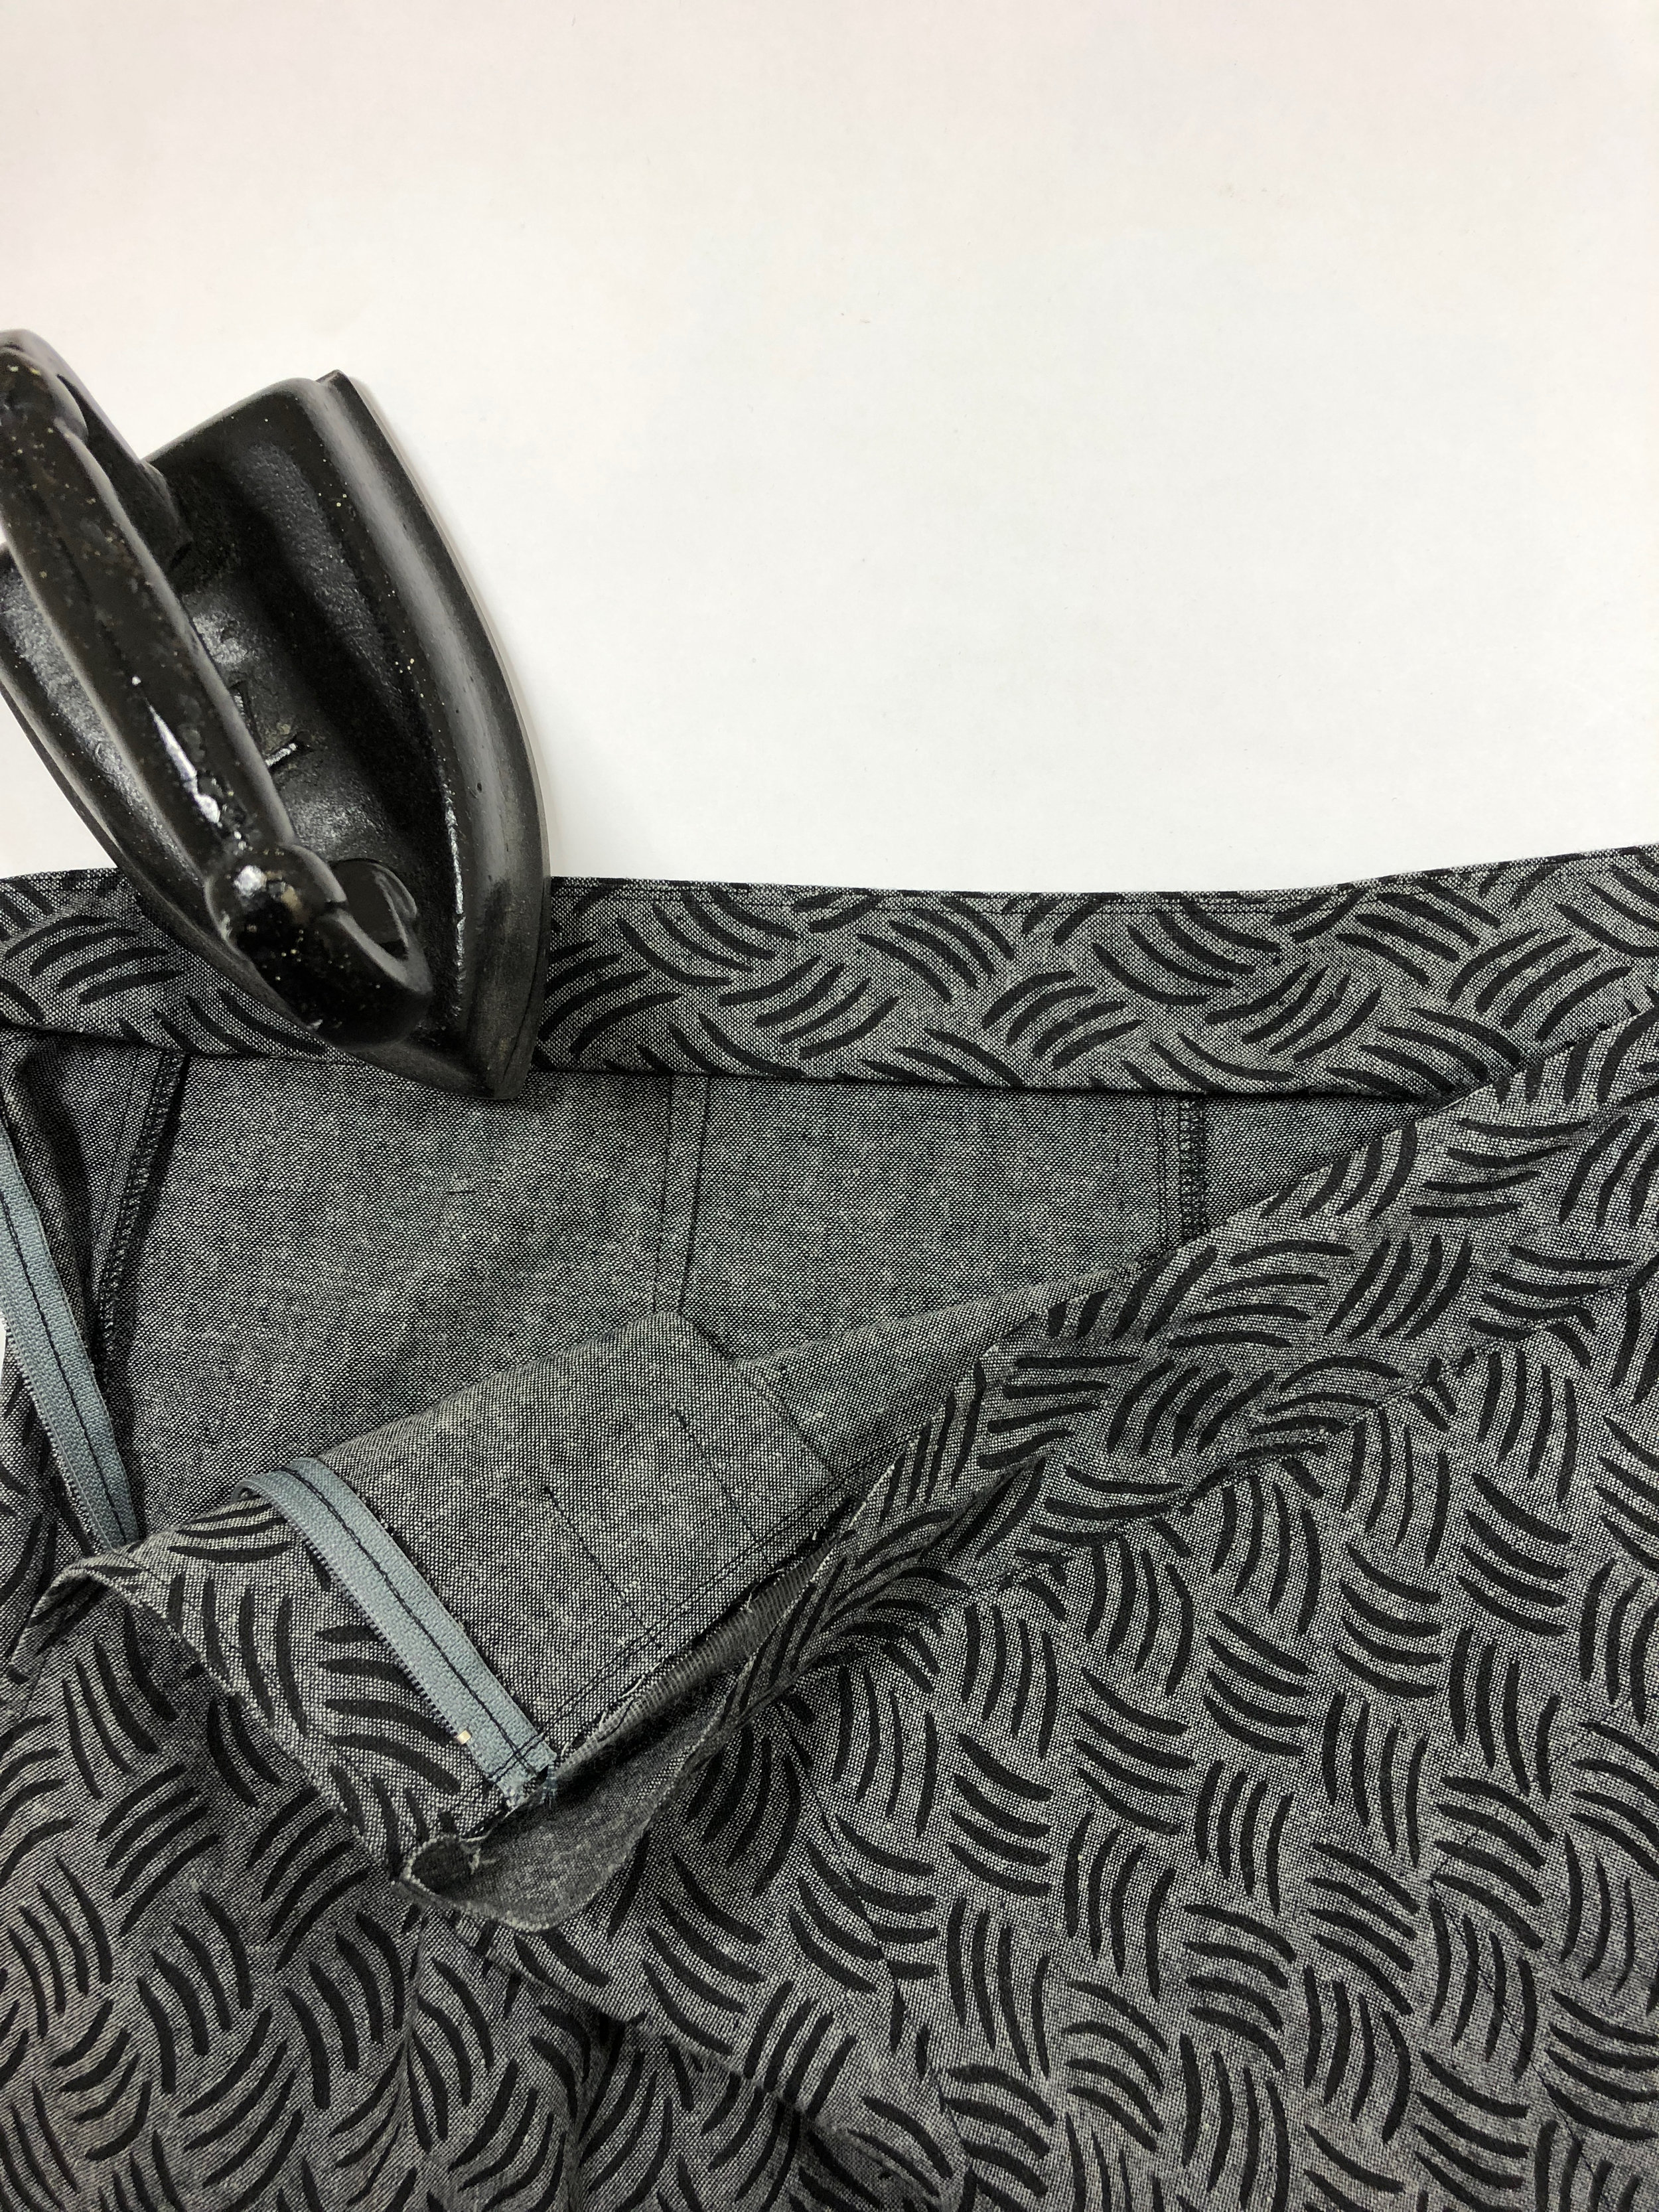 """58. To close up the waistband entirely, fold the remaining seam allowance on the waistband facing up about 3/8"""" to 1/2"""". Just be sure to leave enough hanging past the waistline seam as to catch it with the top stitching from the right side."""